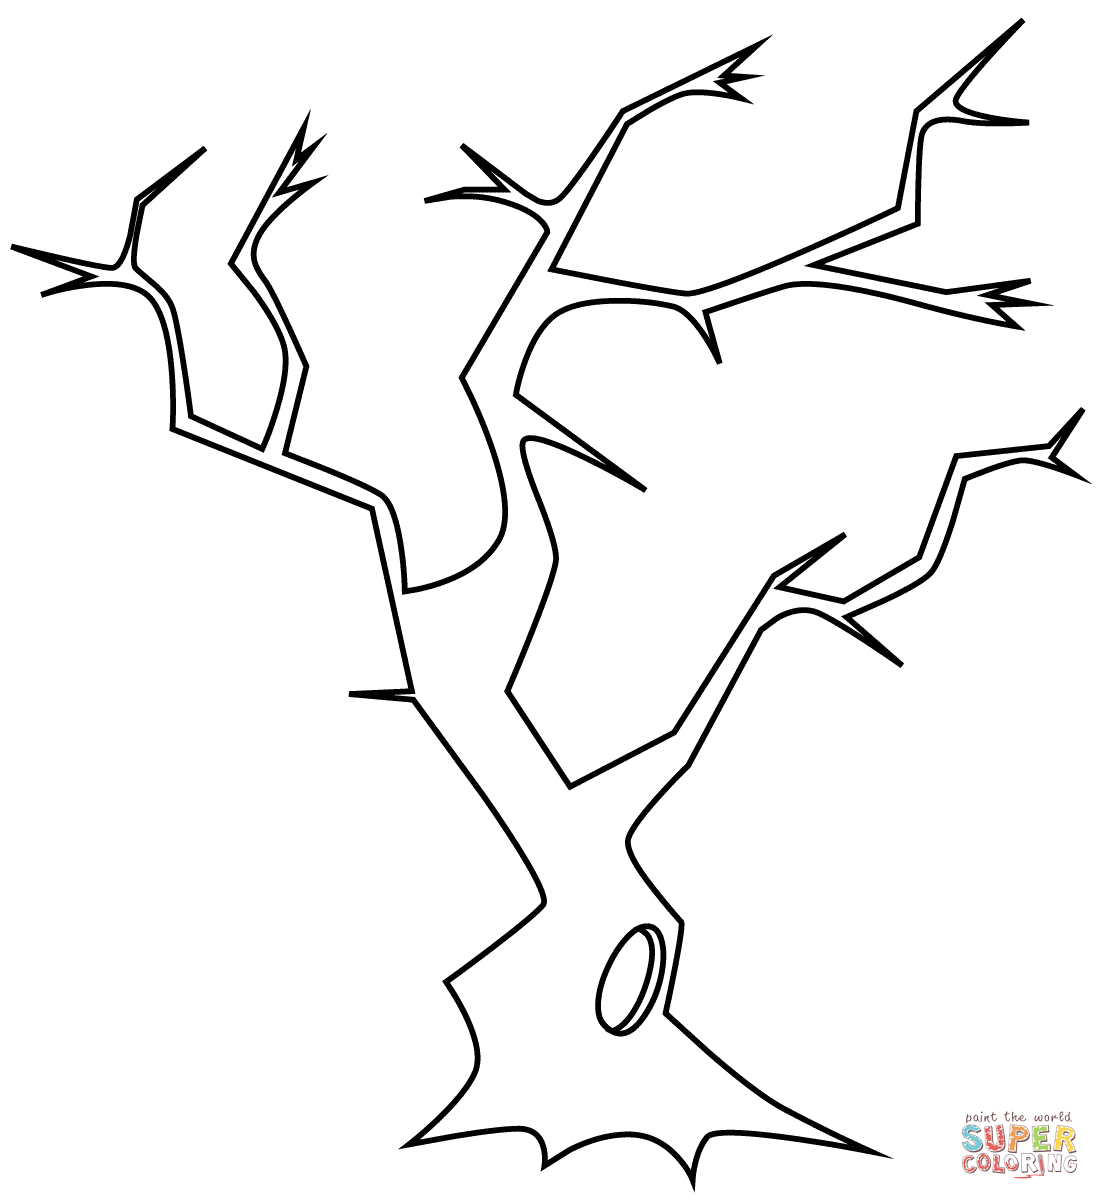 Roots coloring #12, Download drawings